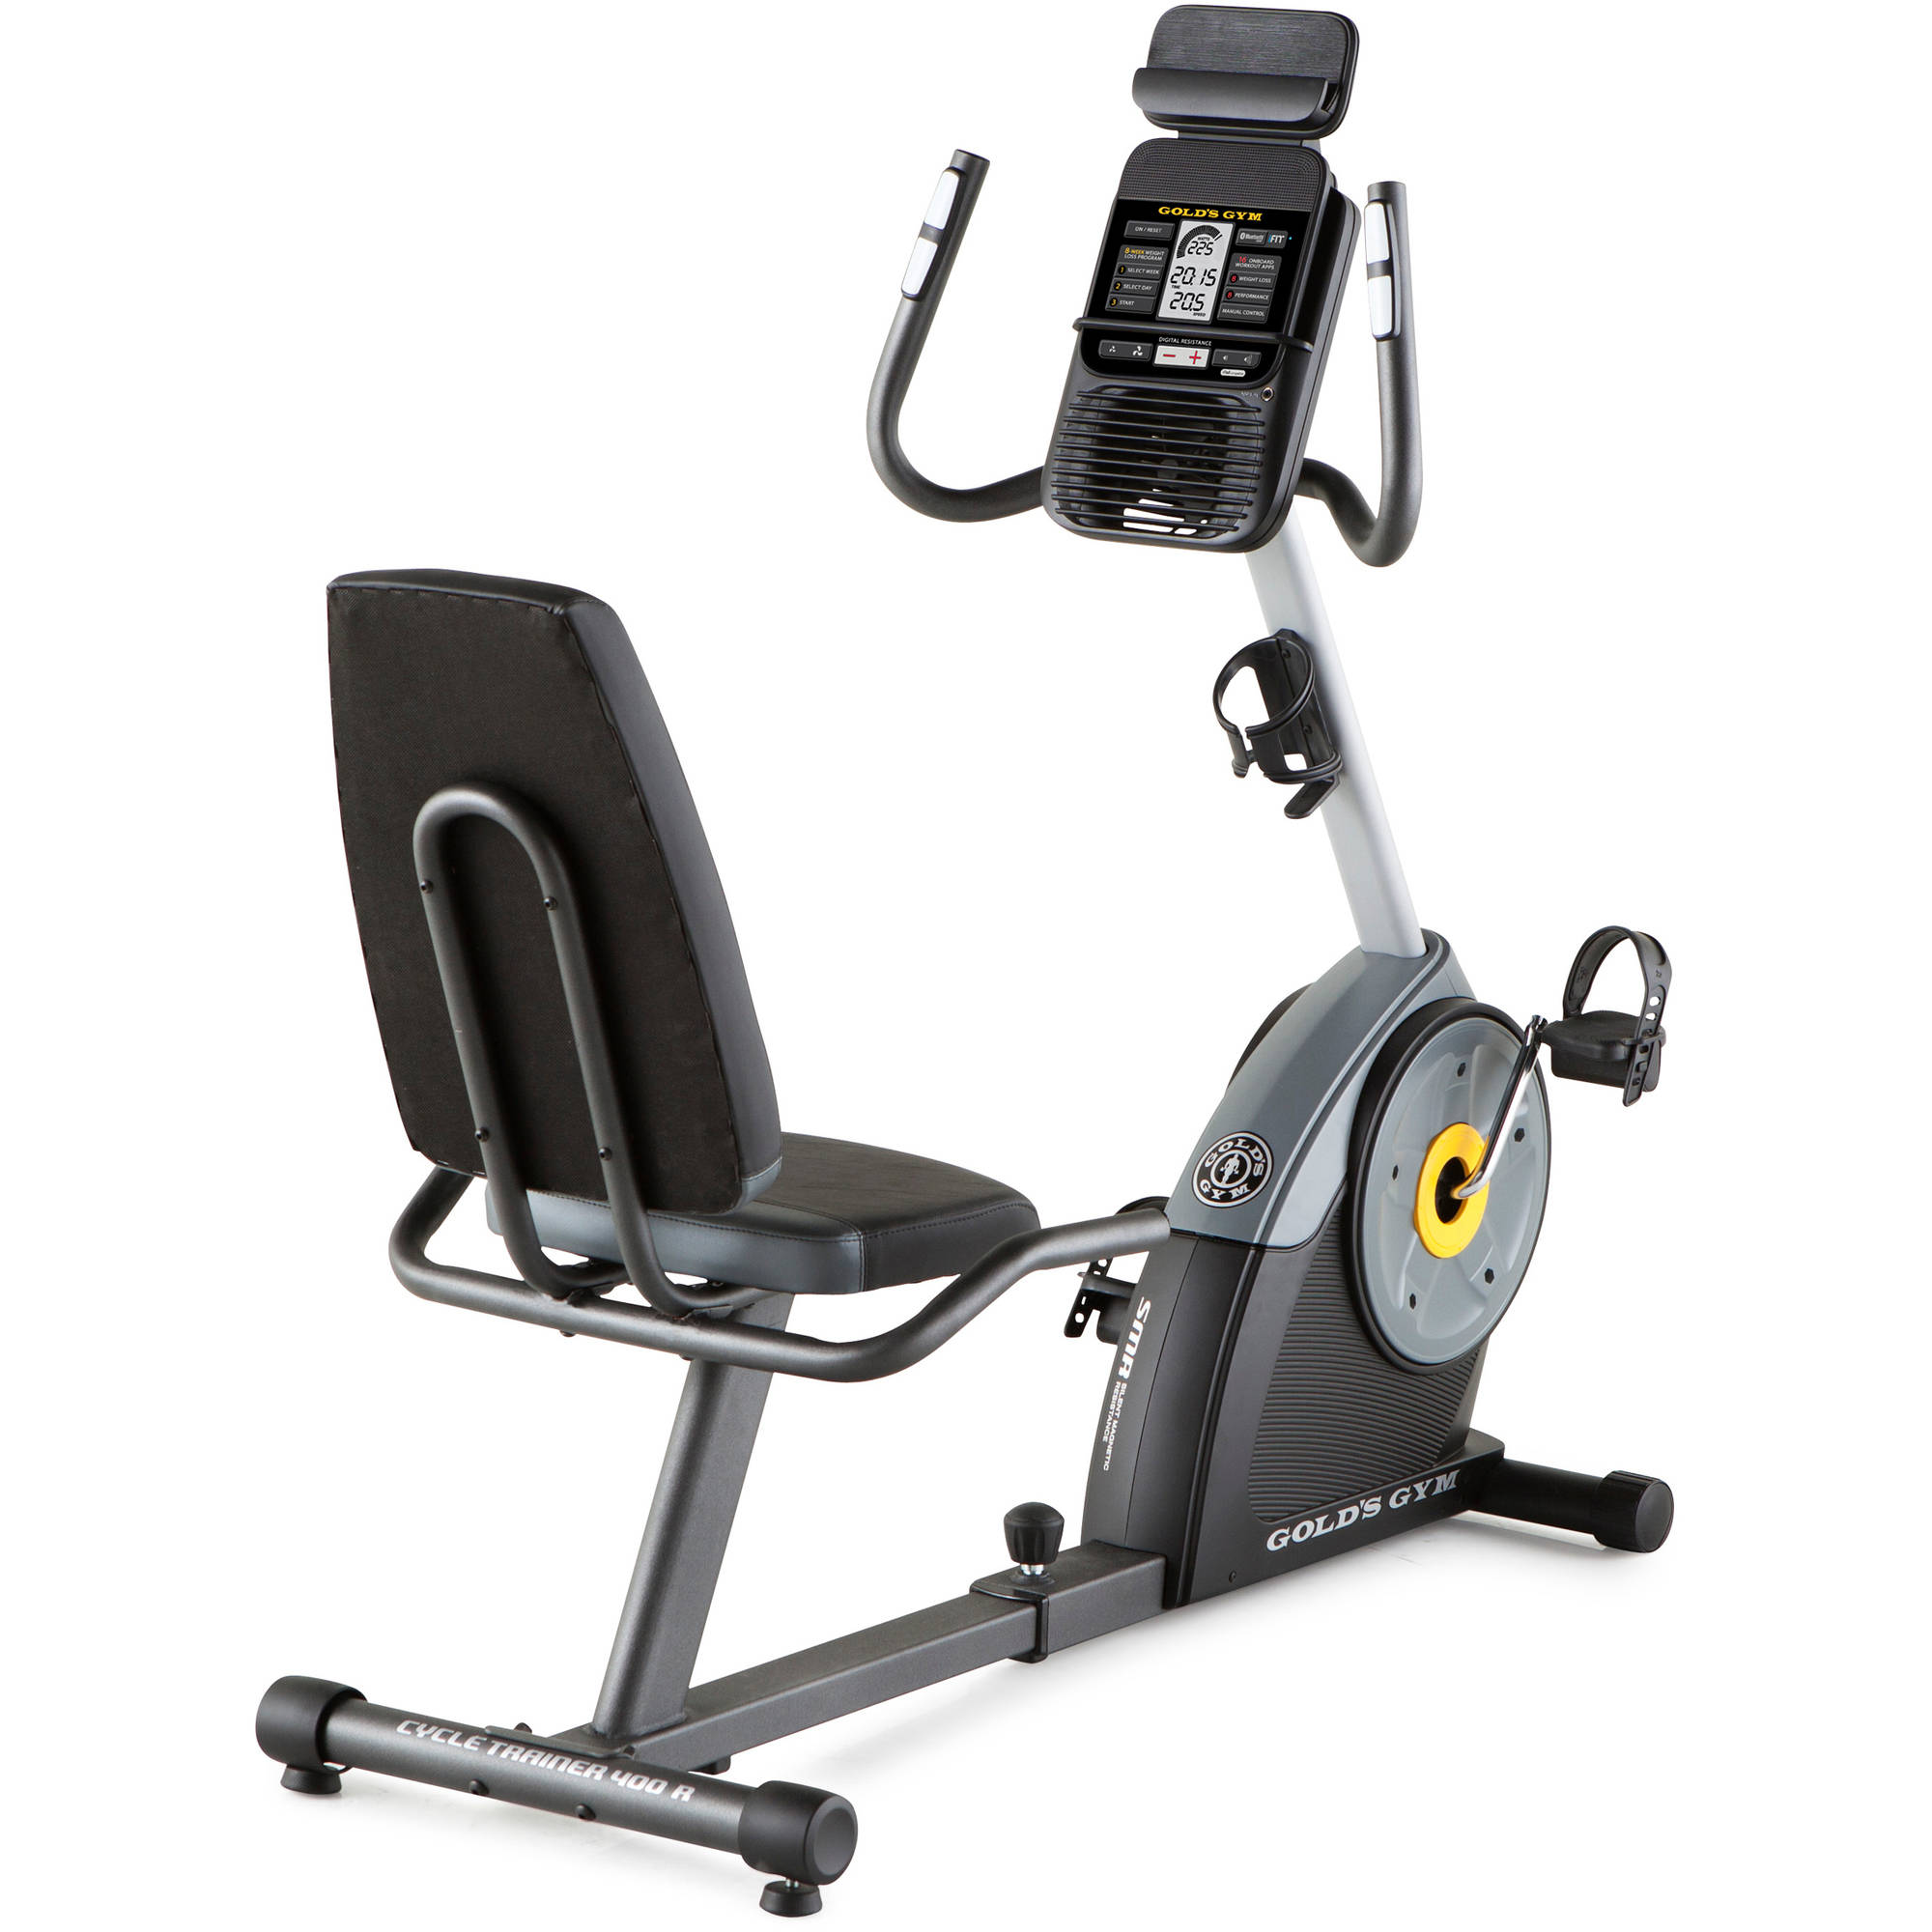 Workout Warehouse Exercise Bikes Gold's Gym Cycle Trainer 400 Ri Exercise Bike